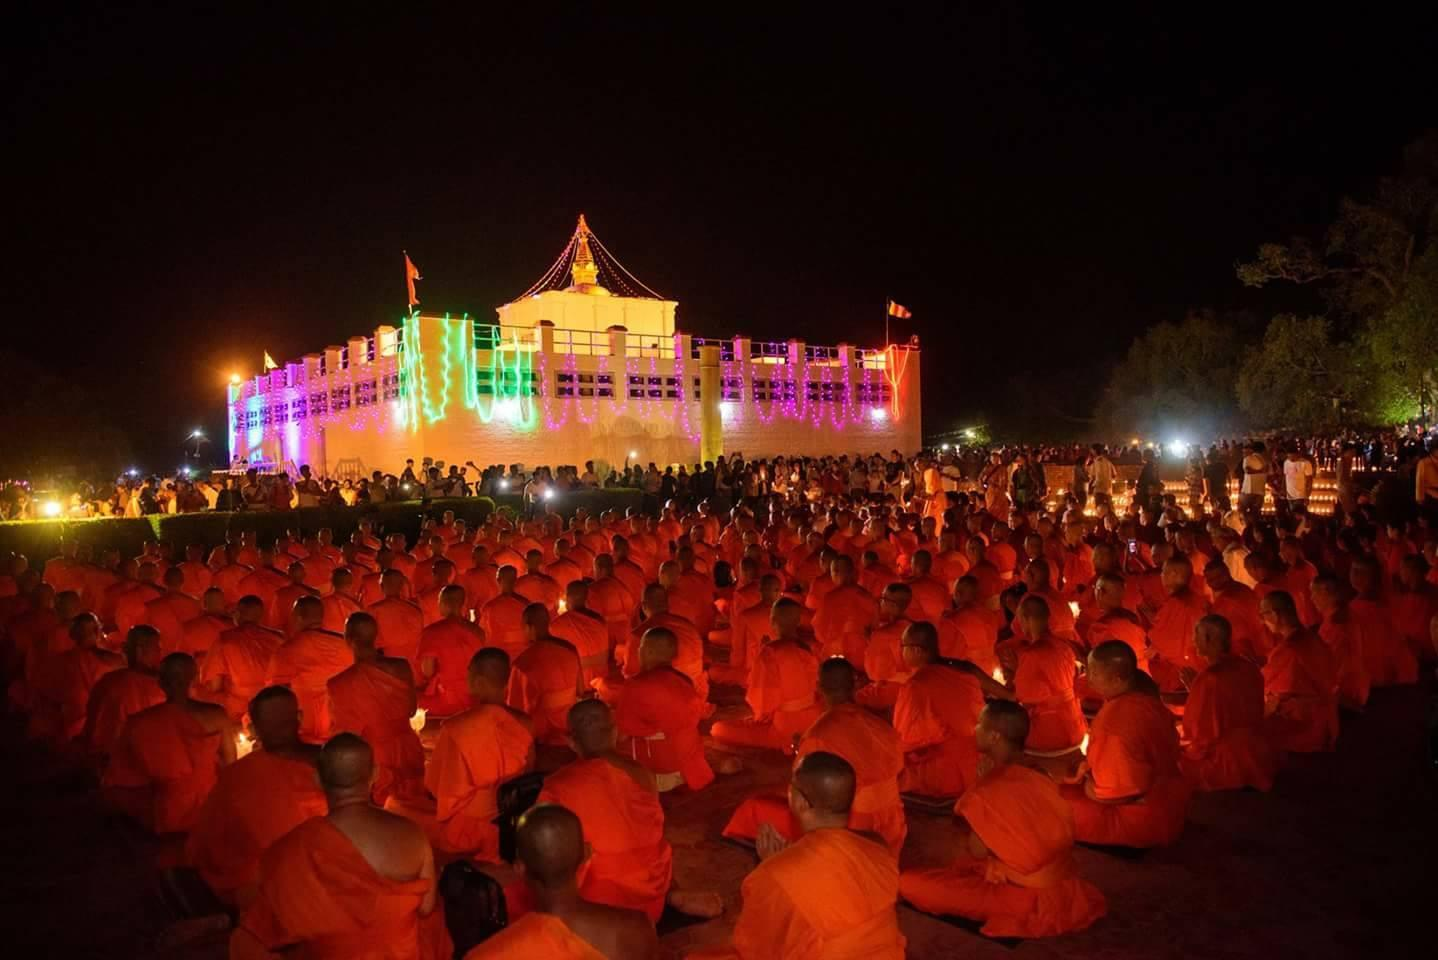 Nighttime Buddhist prayers at Maya Devi Temple, the Birthplace of Lord Buddha, in Lumbini, Nepal – © Bodhi Institute